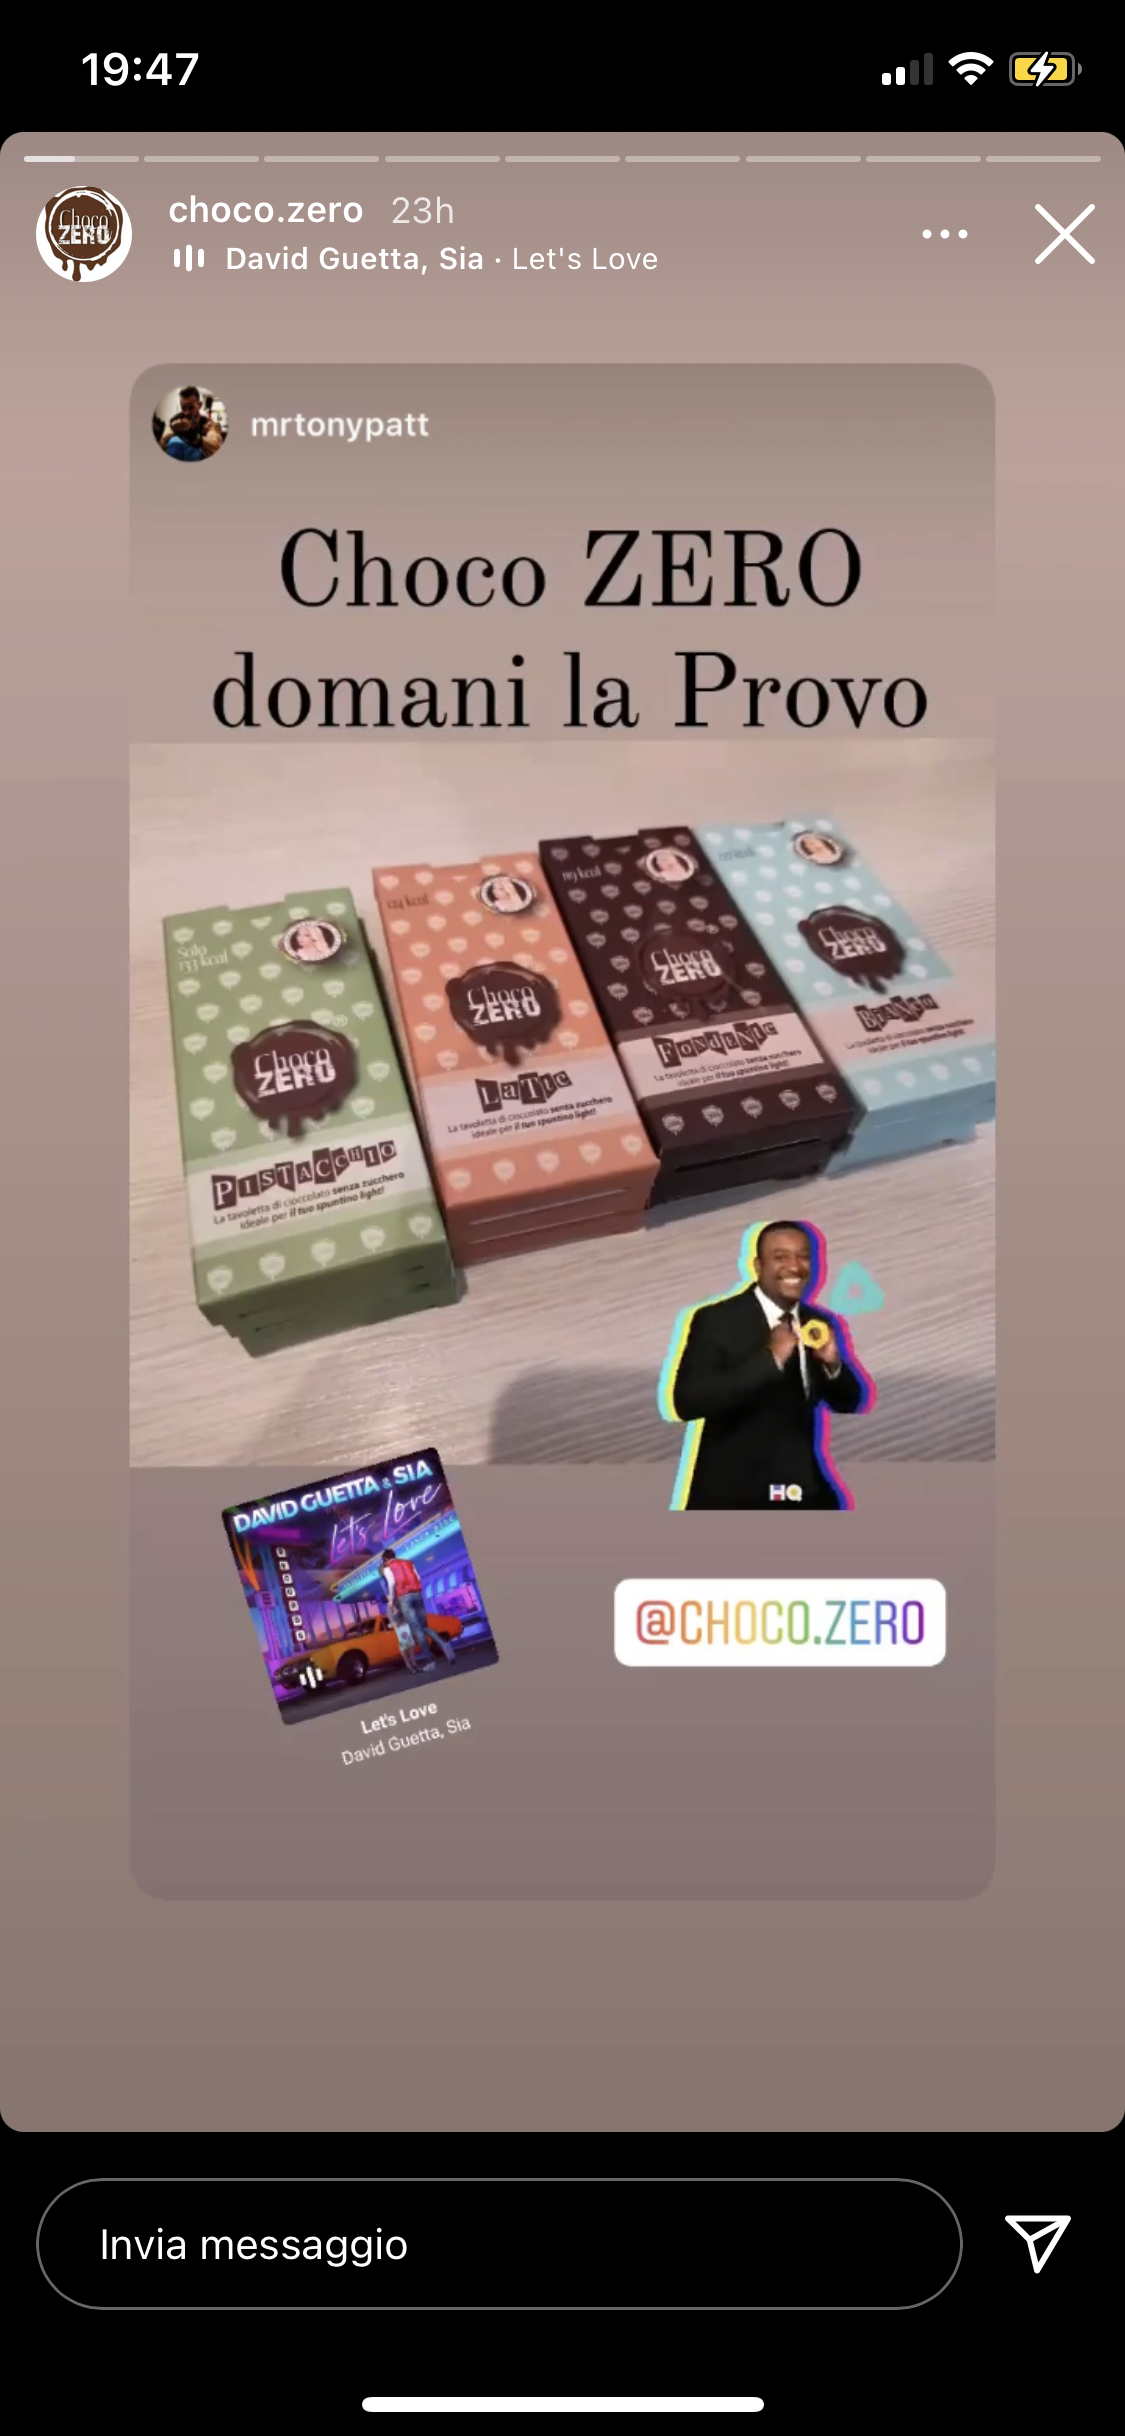 strategie-ecommerce-social-chocozero